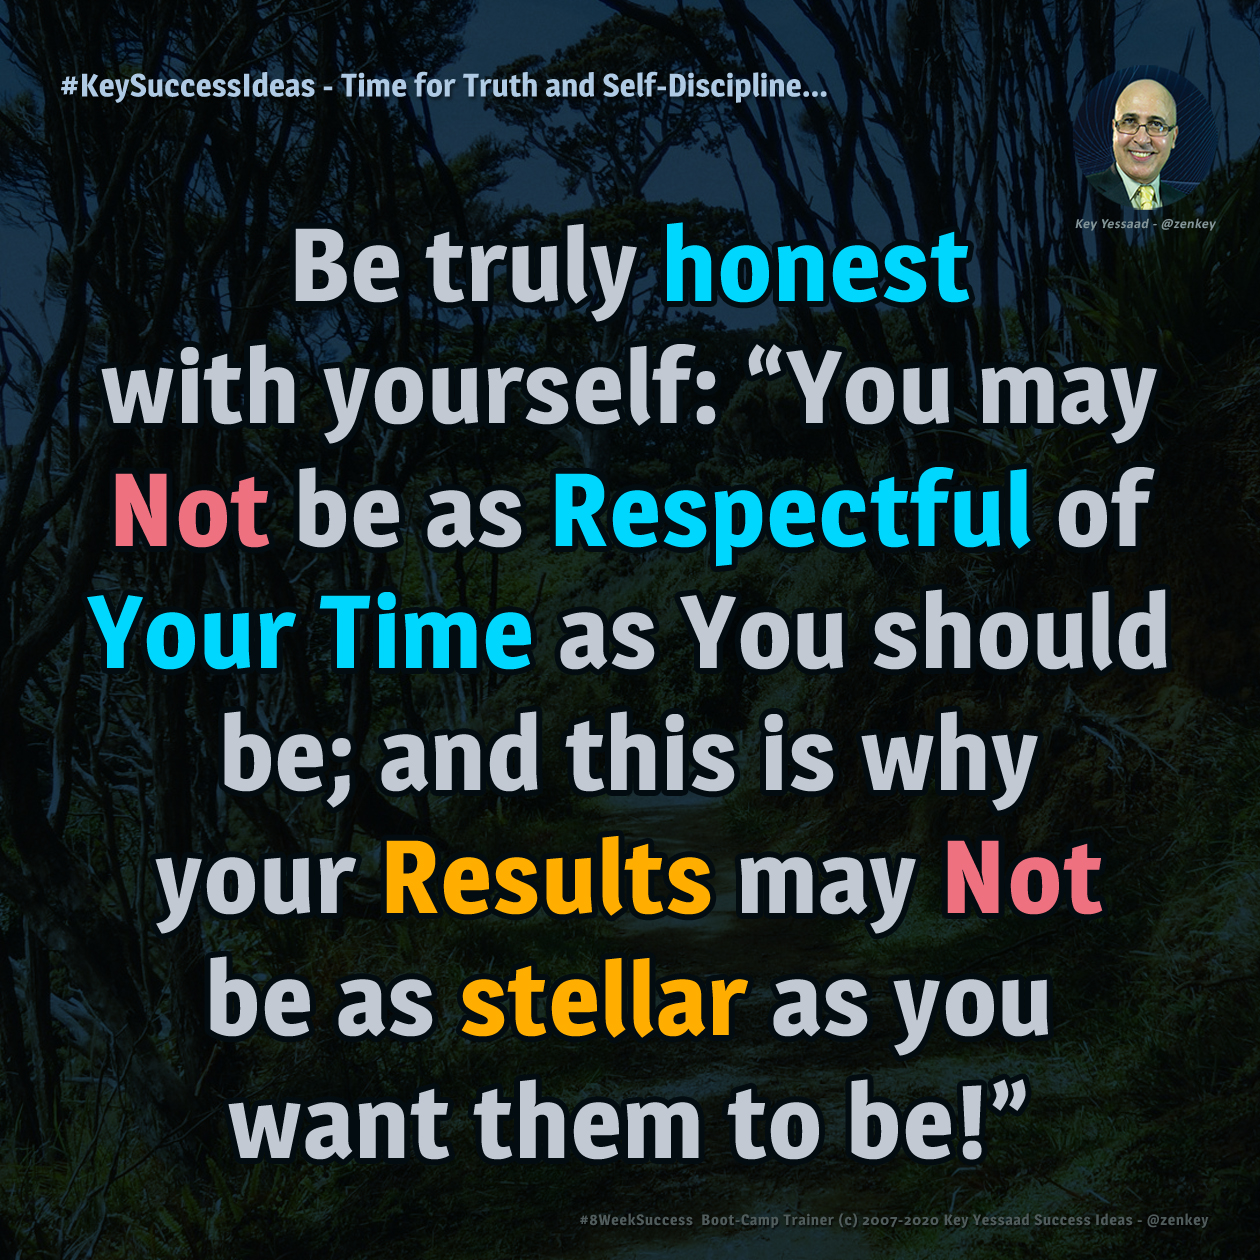 Time for Truth and Self-Discipline... - #KeySuccessIdeas